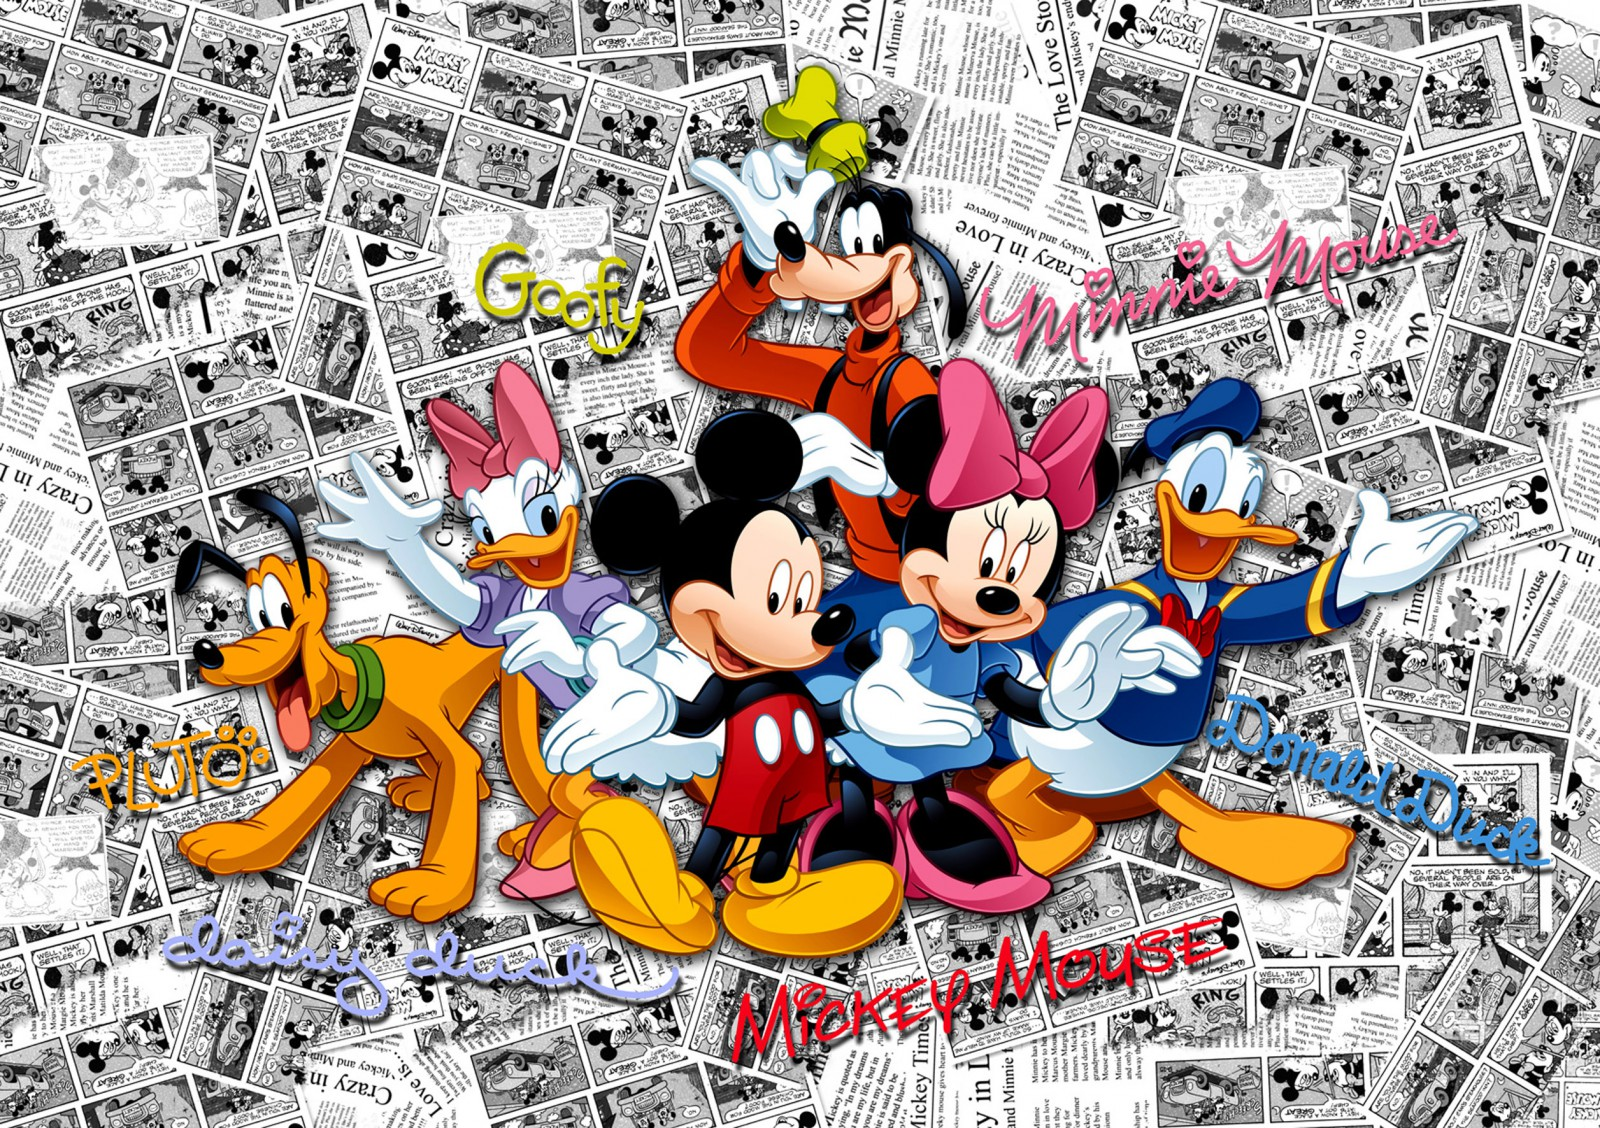 disney fototapete tapete micky minnie maus goofy 360x254cm. Black Bedroom Furniture Sets. Home Design Ideas